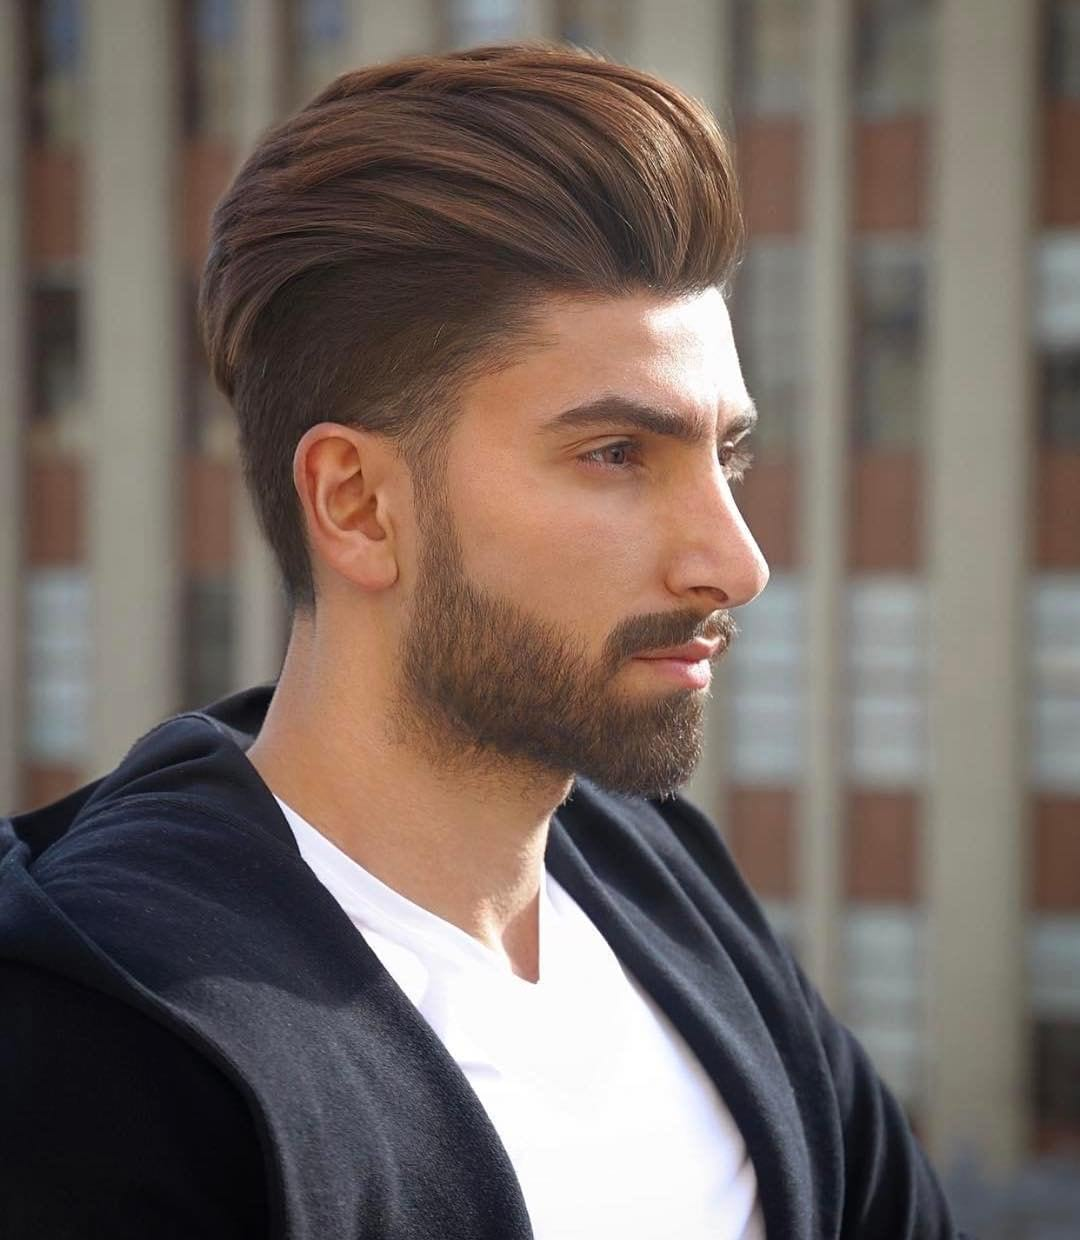 Undercut with a High Volume Backcombed Pompadour